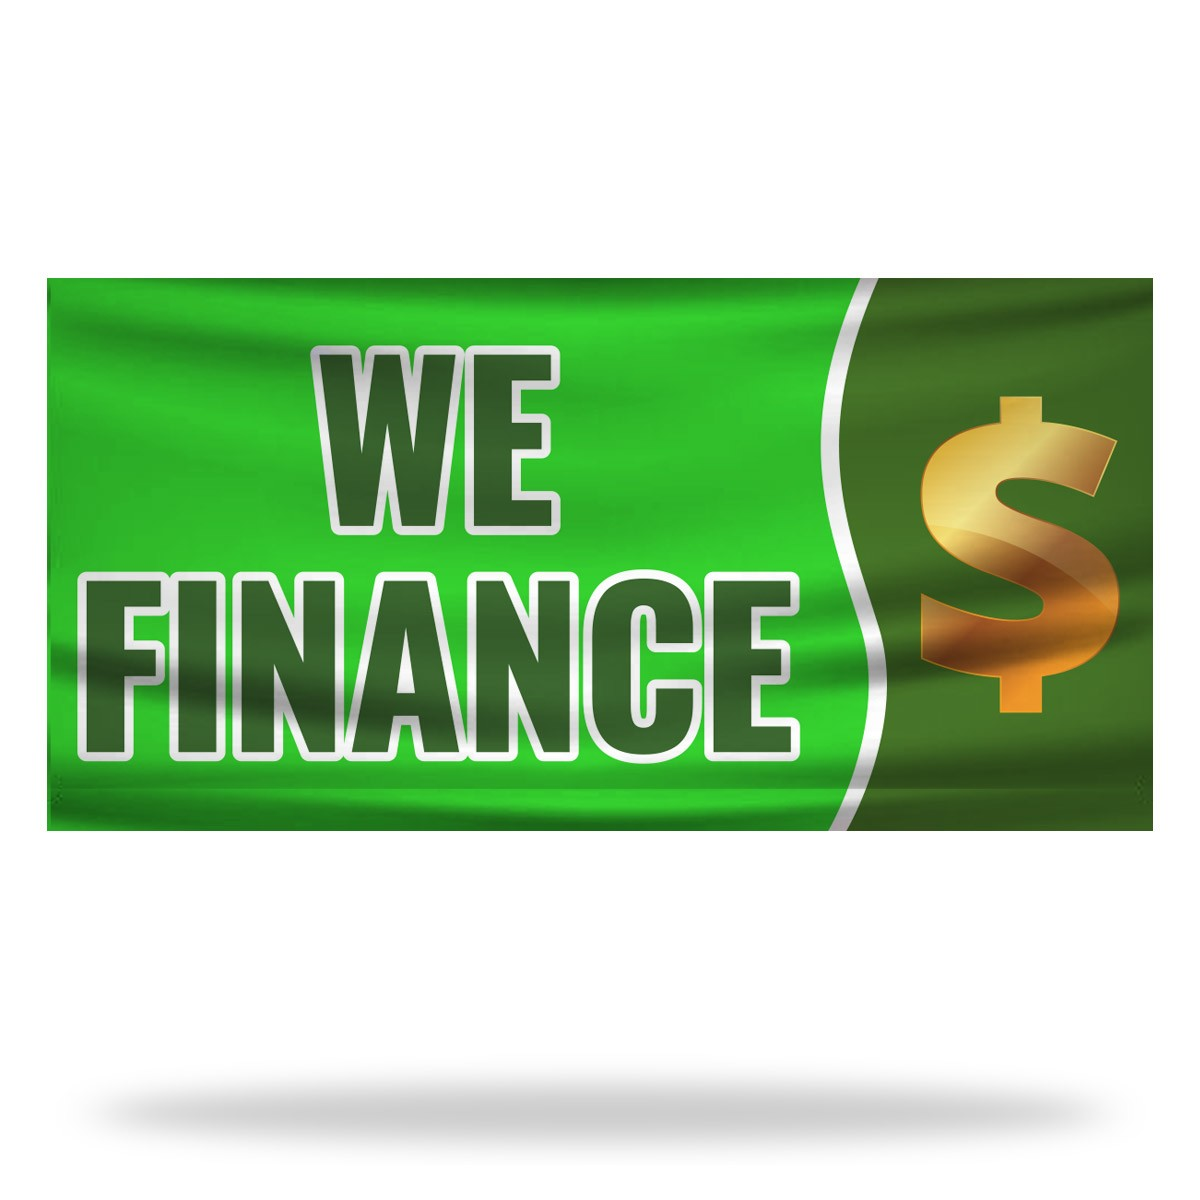 Financing Flags & Banners Design 01